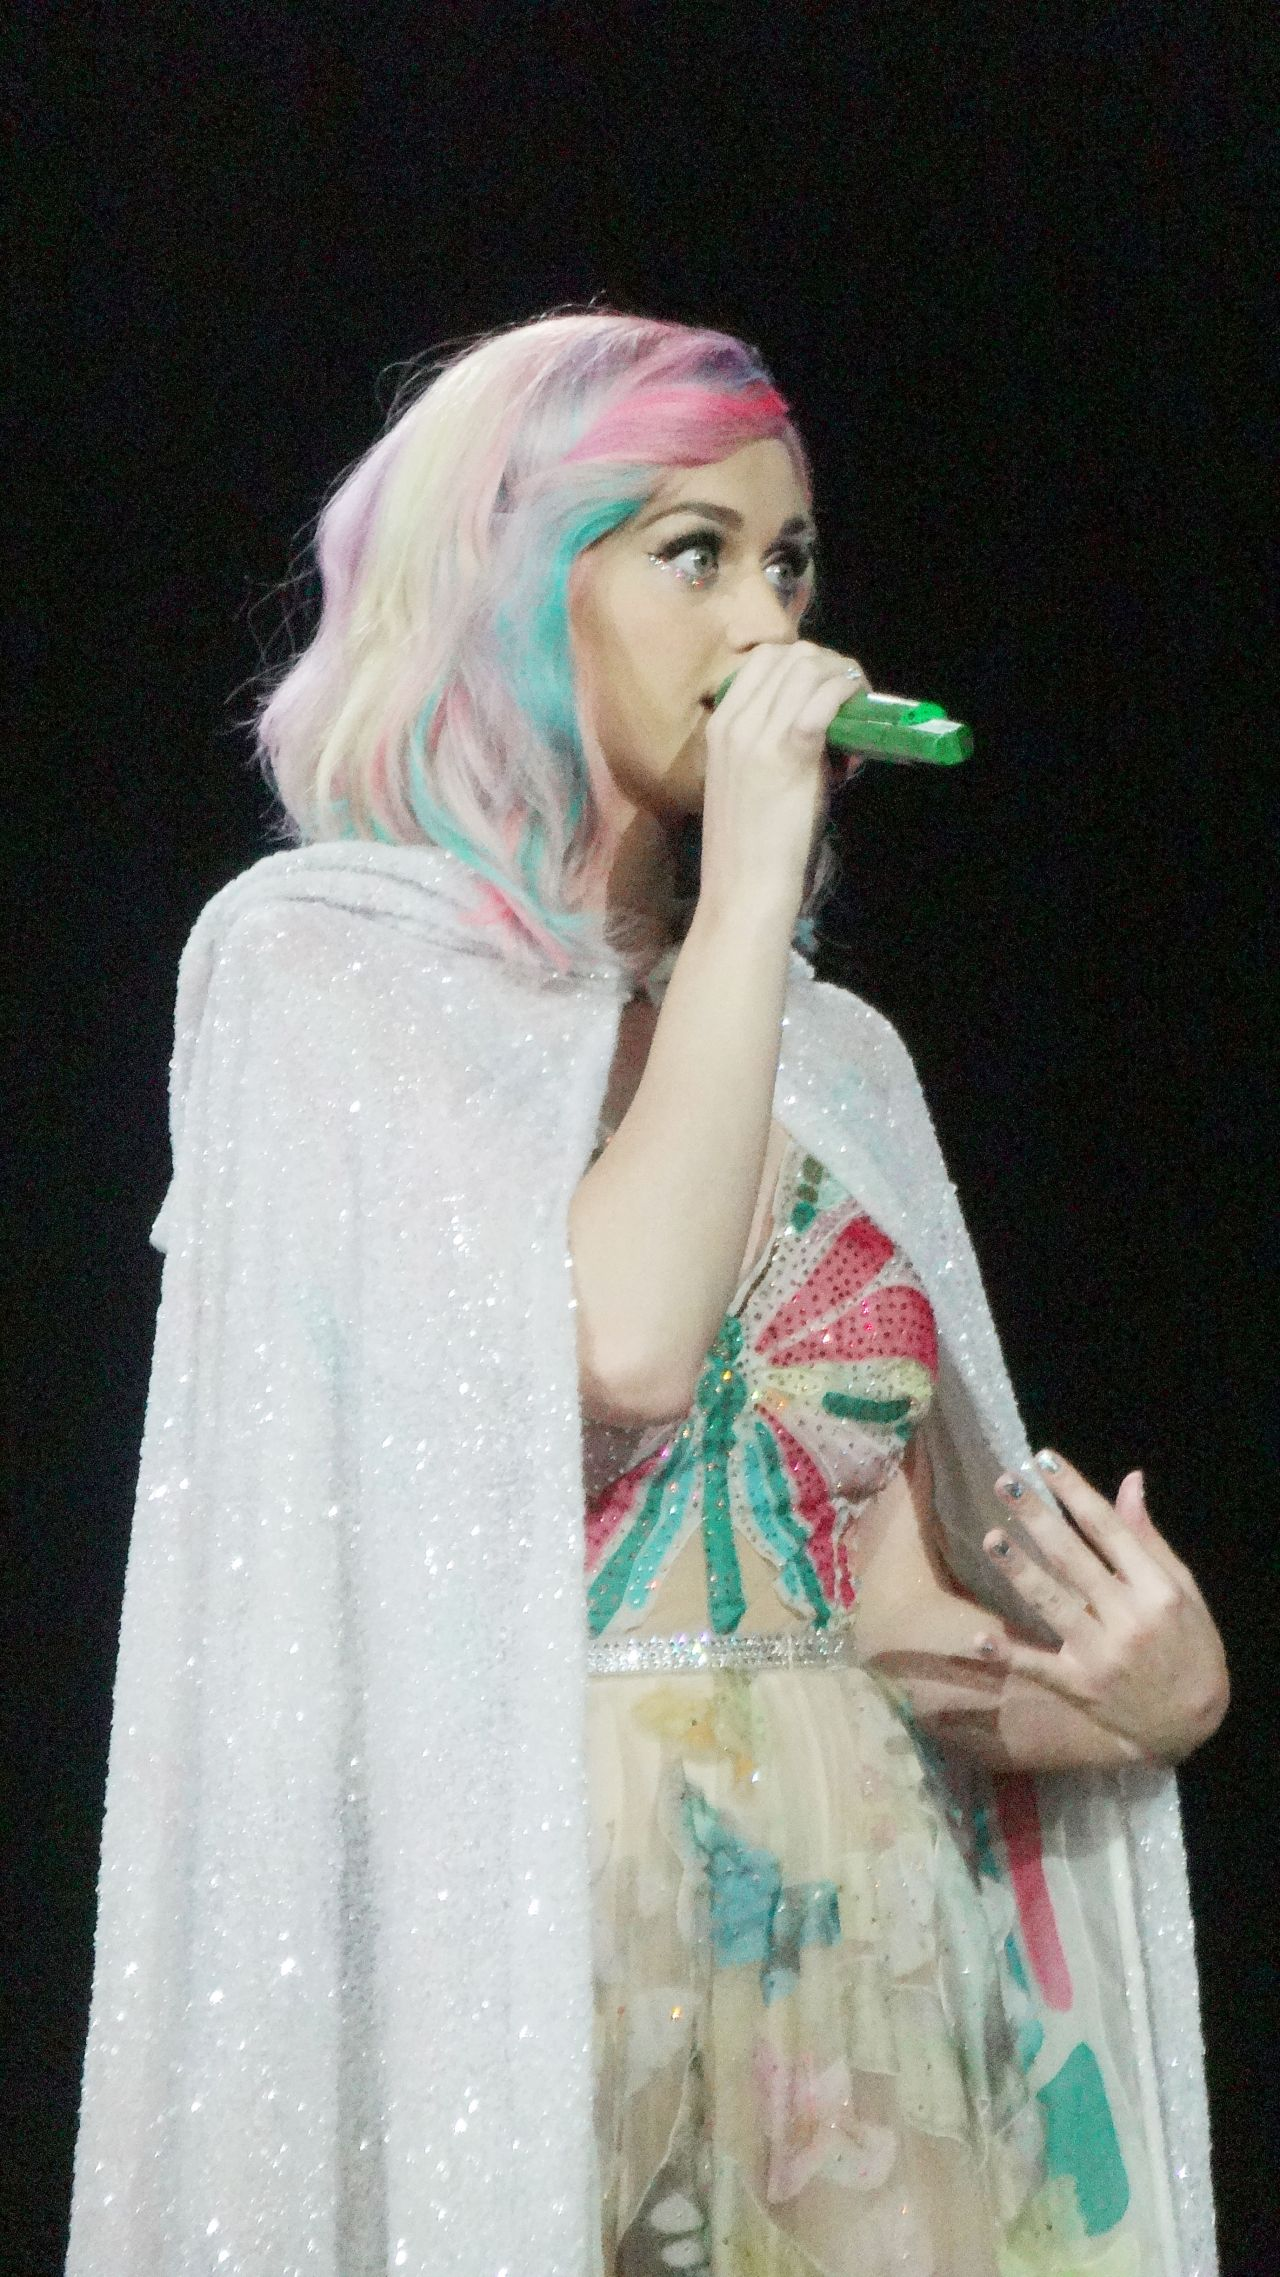 Katy Perry Performs At Prismatic Tour O2 Arena In London